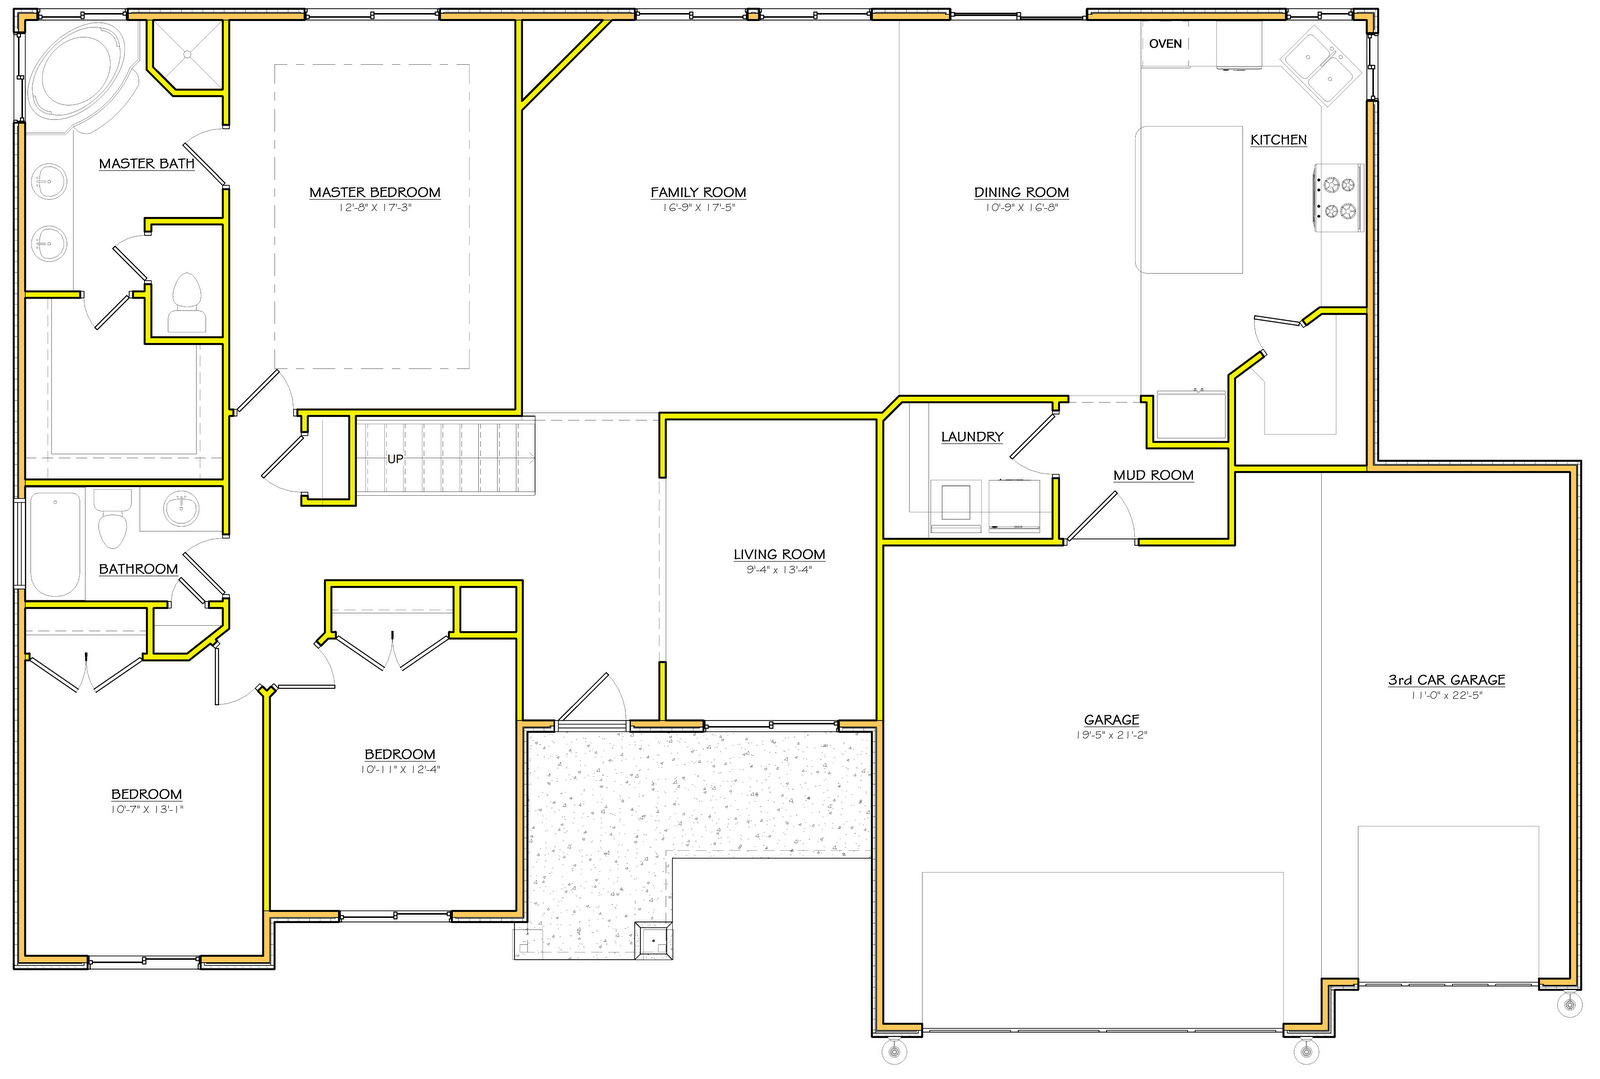 House Plans Utah 28 Images Home Designs Floor Plans